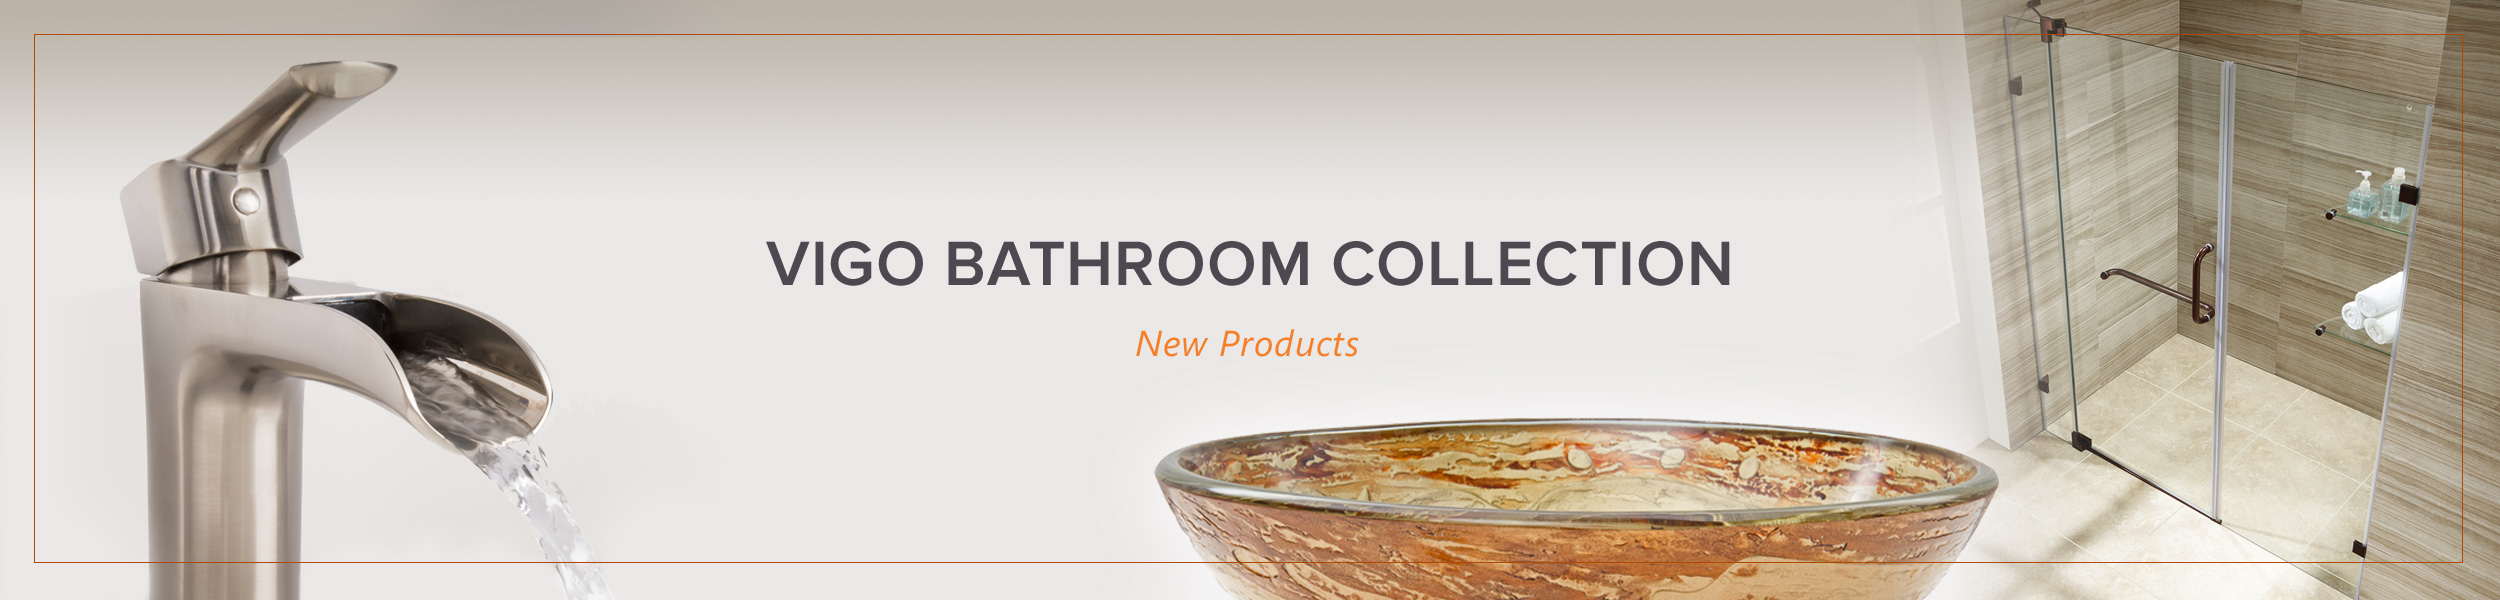 Bathroom Products - New